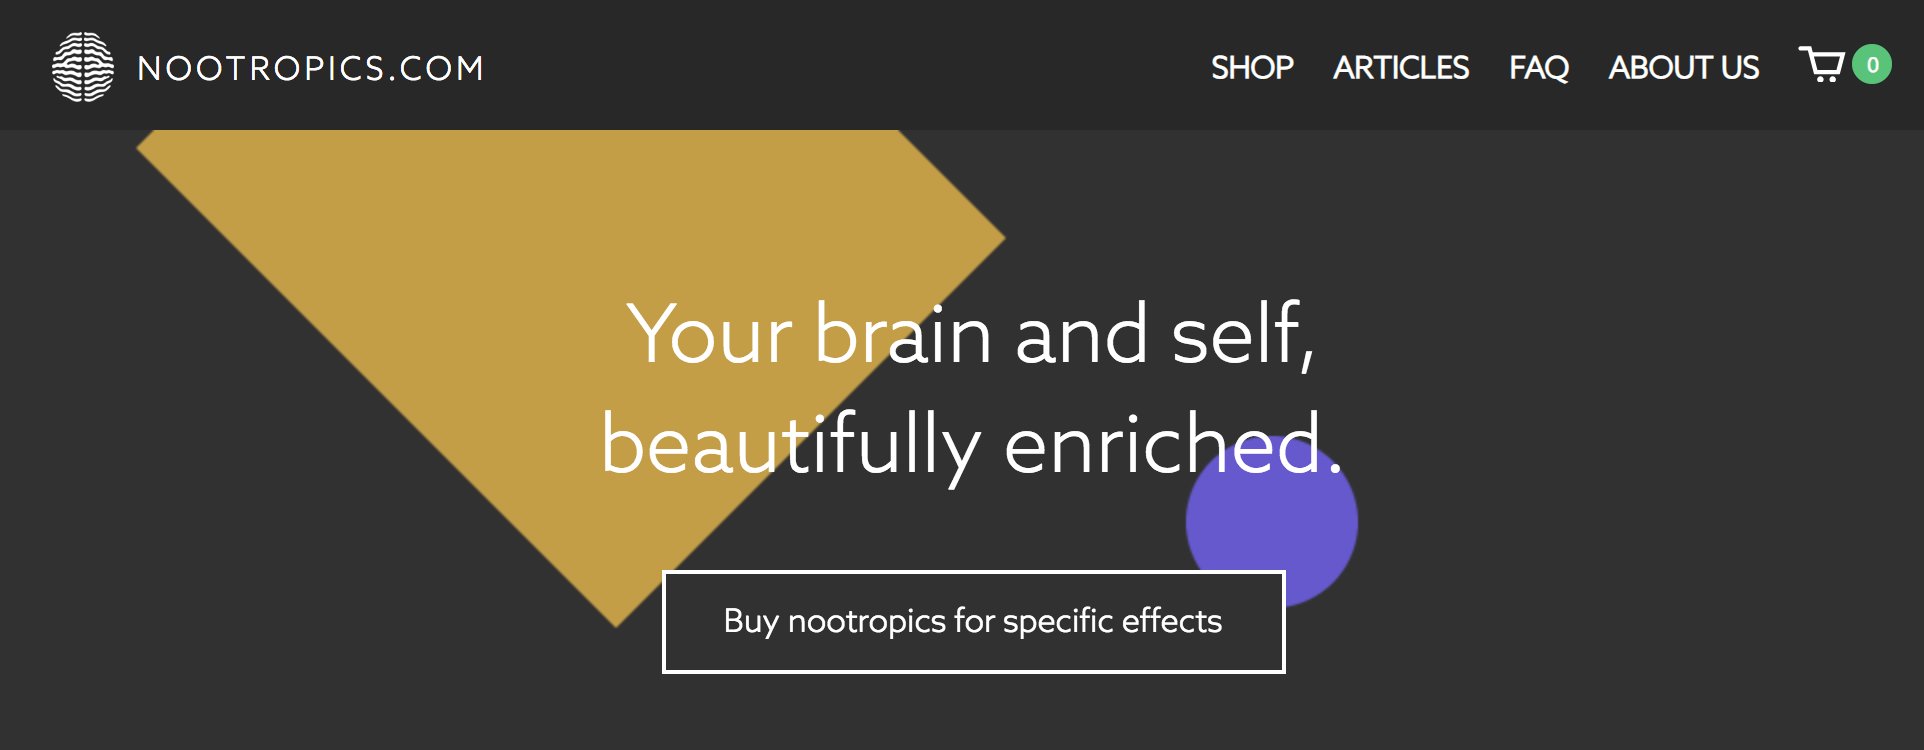 Where To Buy Nootropics For Sale Online: 10 Best Vendors